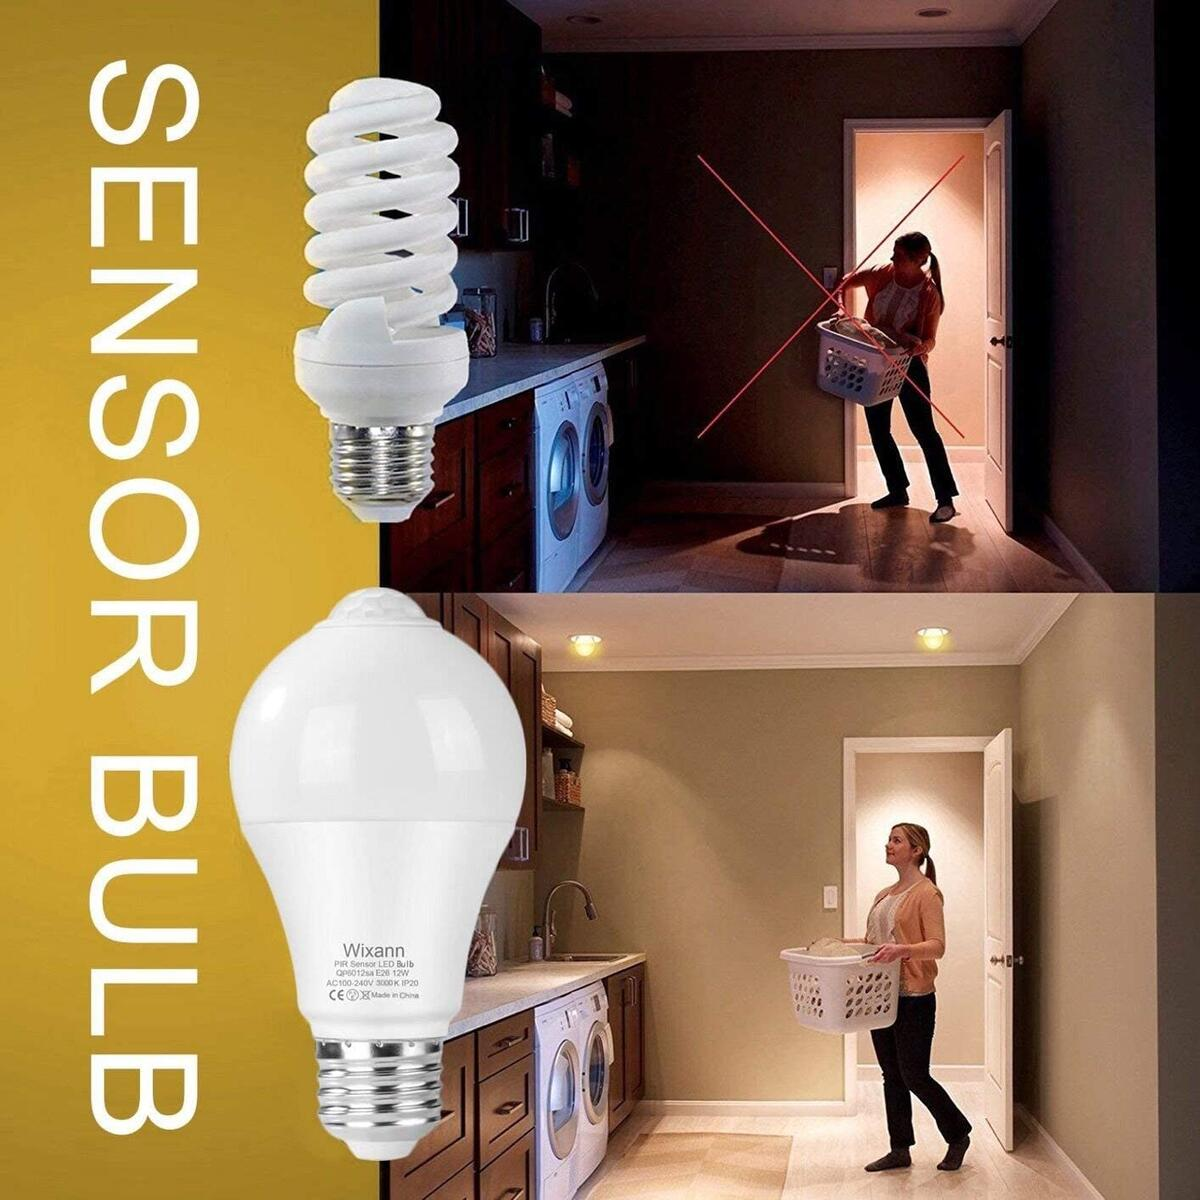 Smart Motion Sensor Light Bulbs, 3000K Warm White Built-in Motion Detector and Photocell Sensor, Automatic on/Off, Dusk to Dawn, A19/E26/120V/12W/1000lm for Porch Hallway Stairs Garage - 2Pack